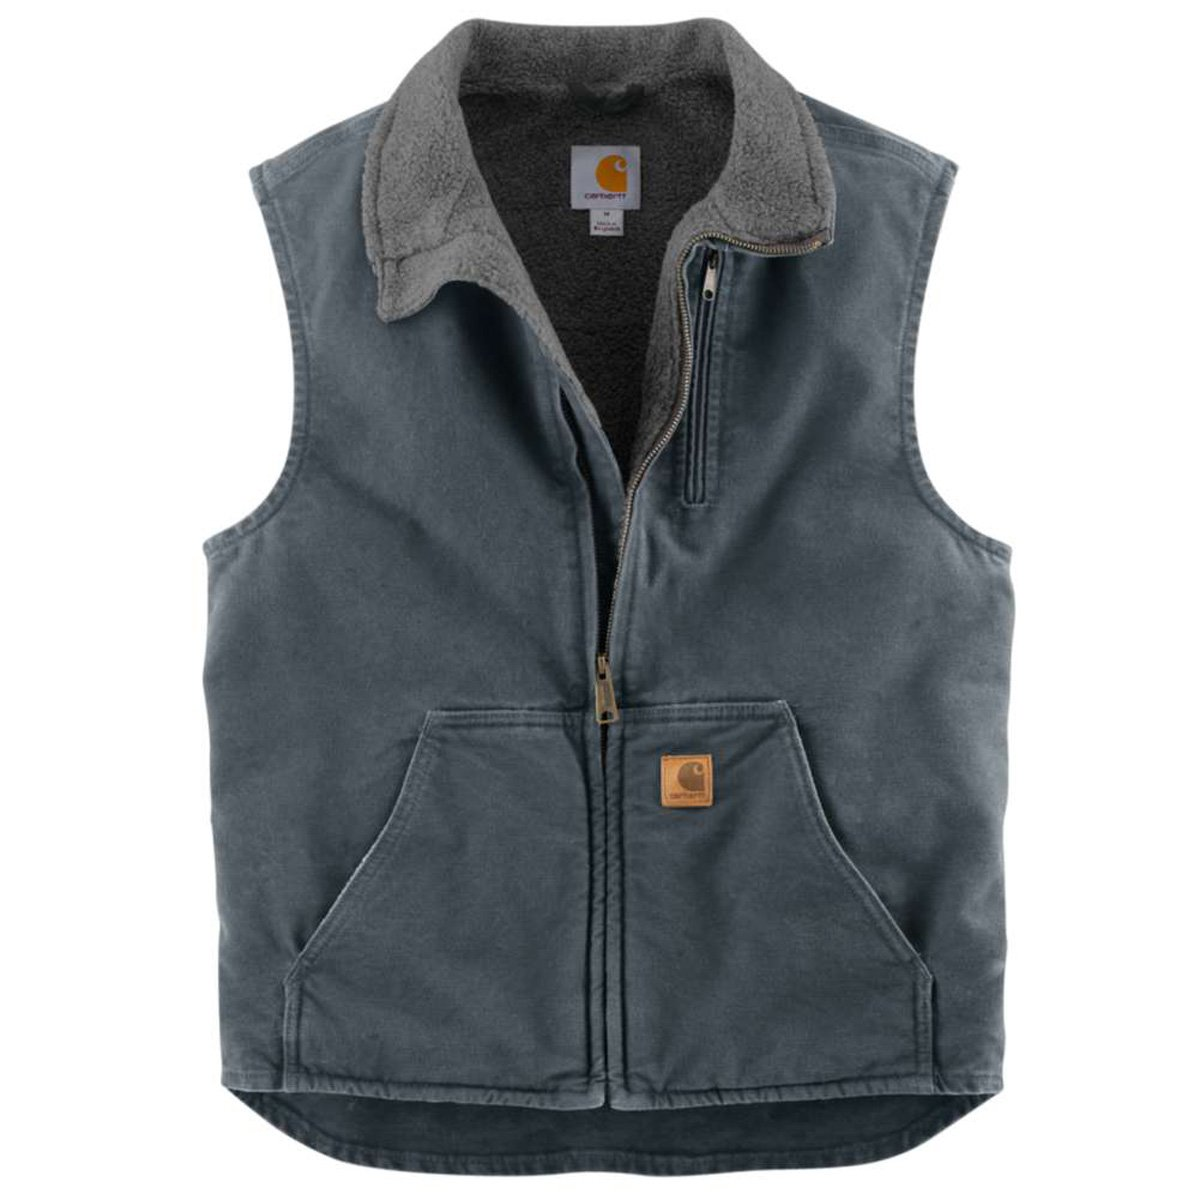 Carhartt Men's Big & Tall Sherpa Lined Sandstone Mock Neck Vest V33,Gravel,X-Large Tall